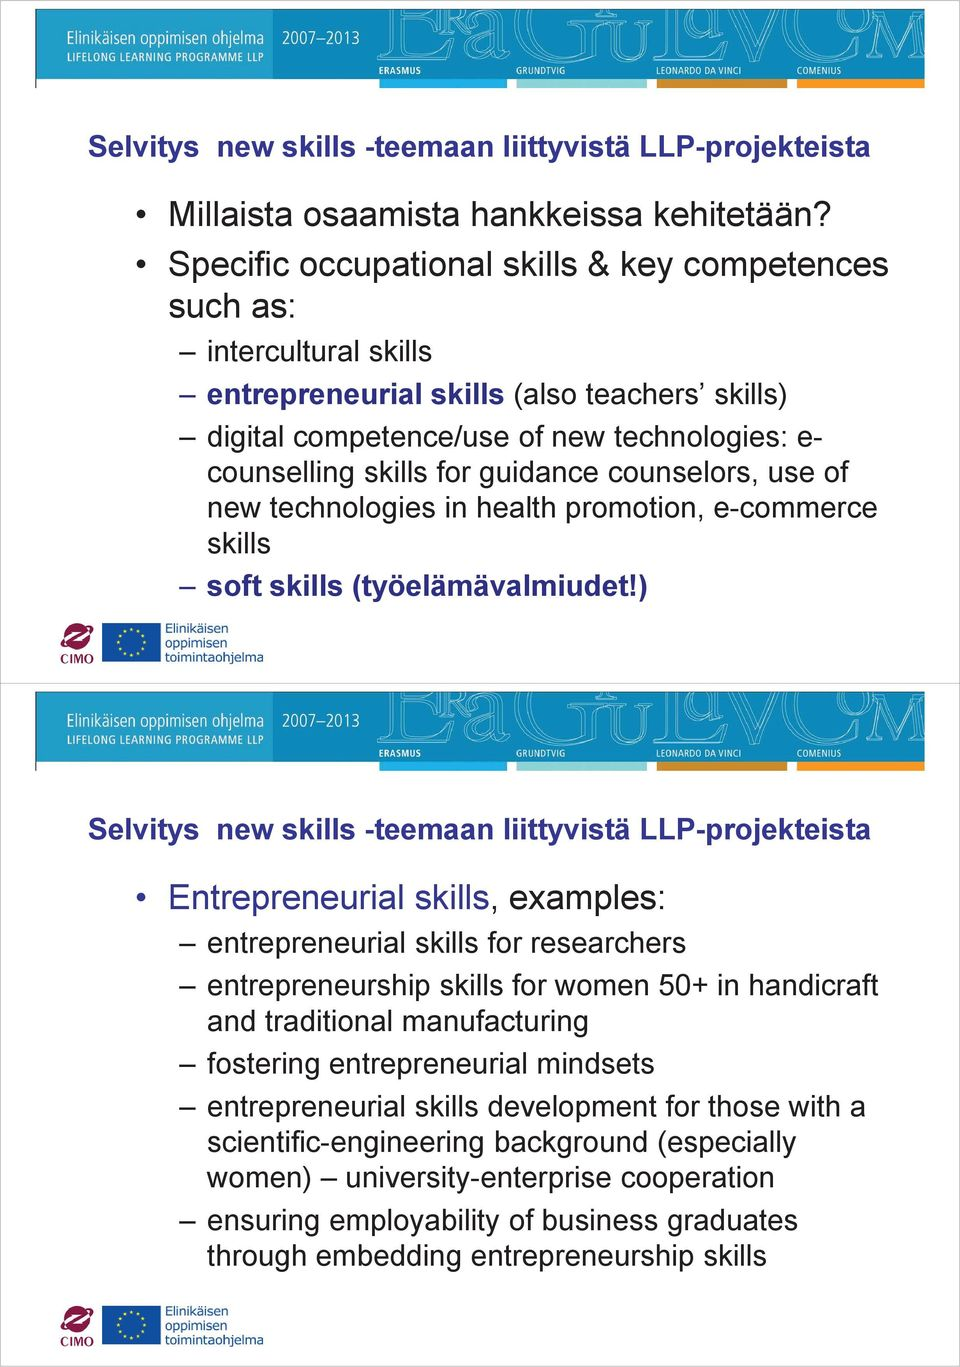 guidance counselors, use of new technologies in health promotion, e-commerce skills soft skills (työelämävalmiudet!